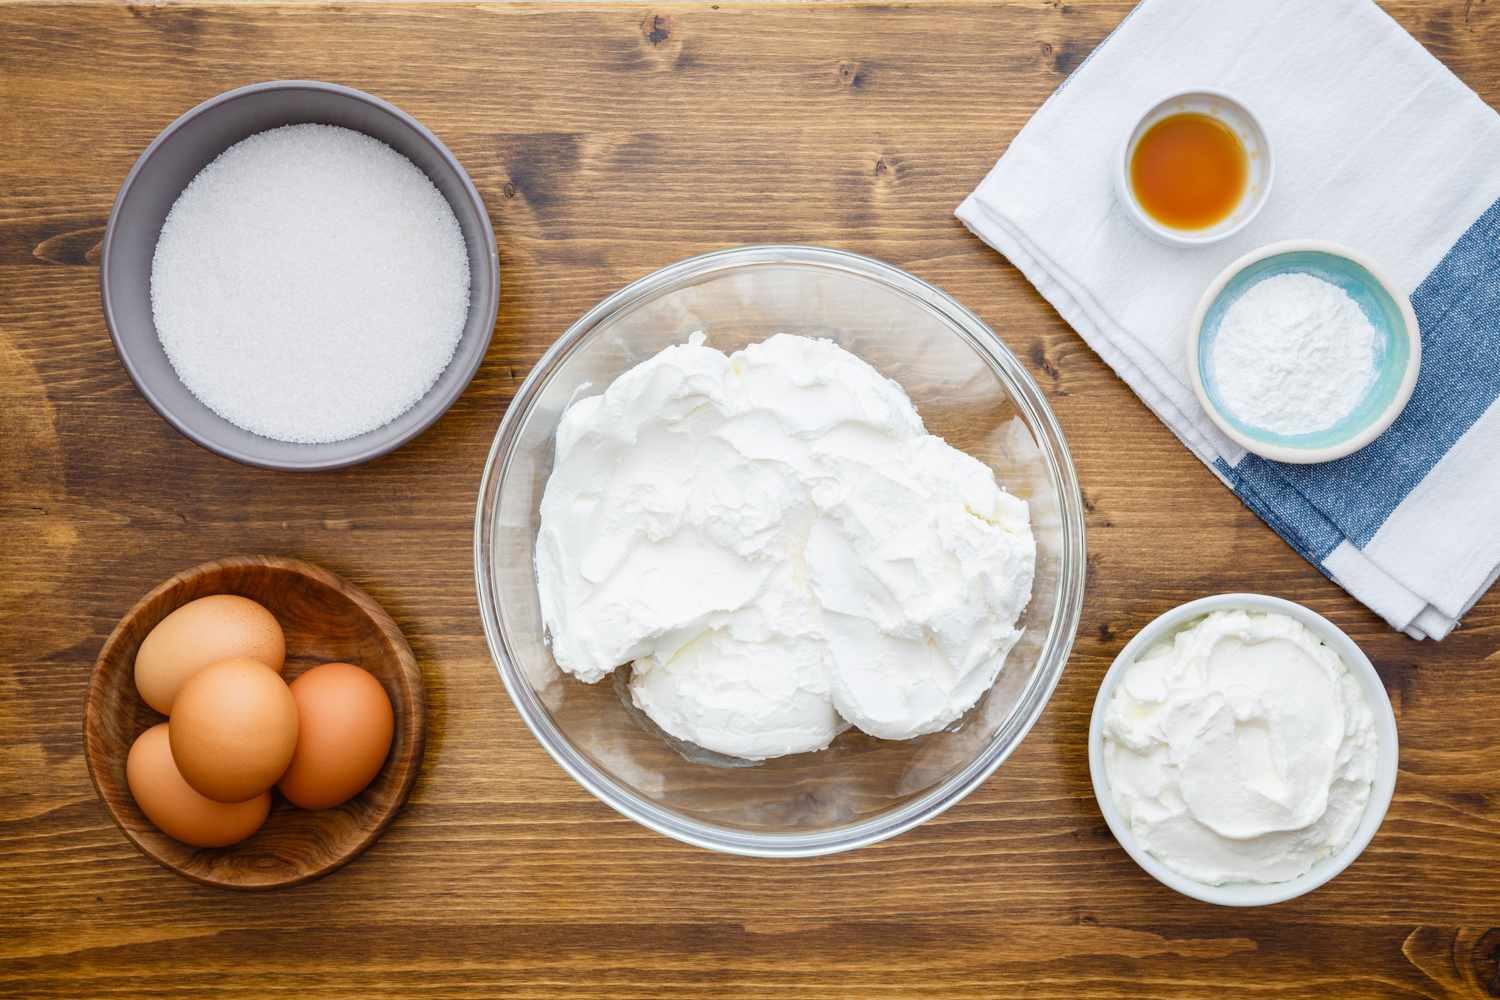 Ingredients for cheesecake filling